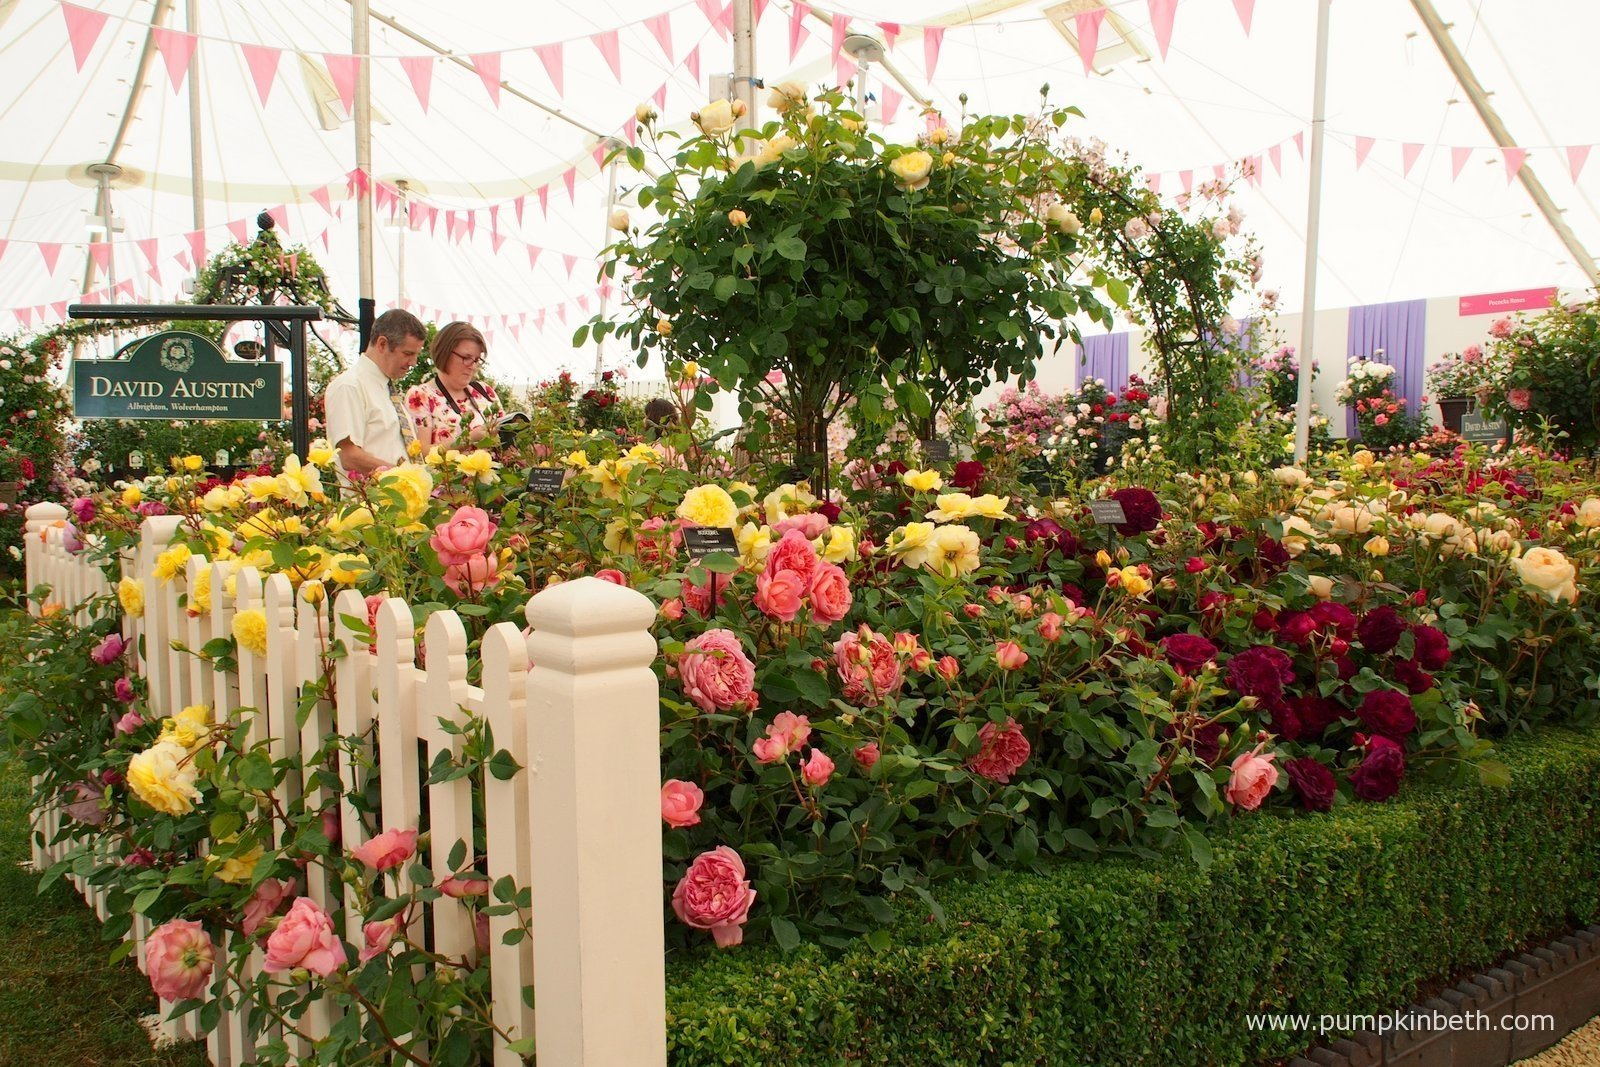 The Festival of Roses at The RHS Hampton Court Palace Flower Show 2015 Pump